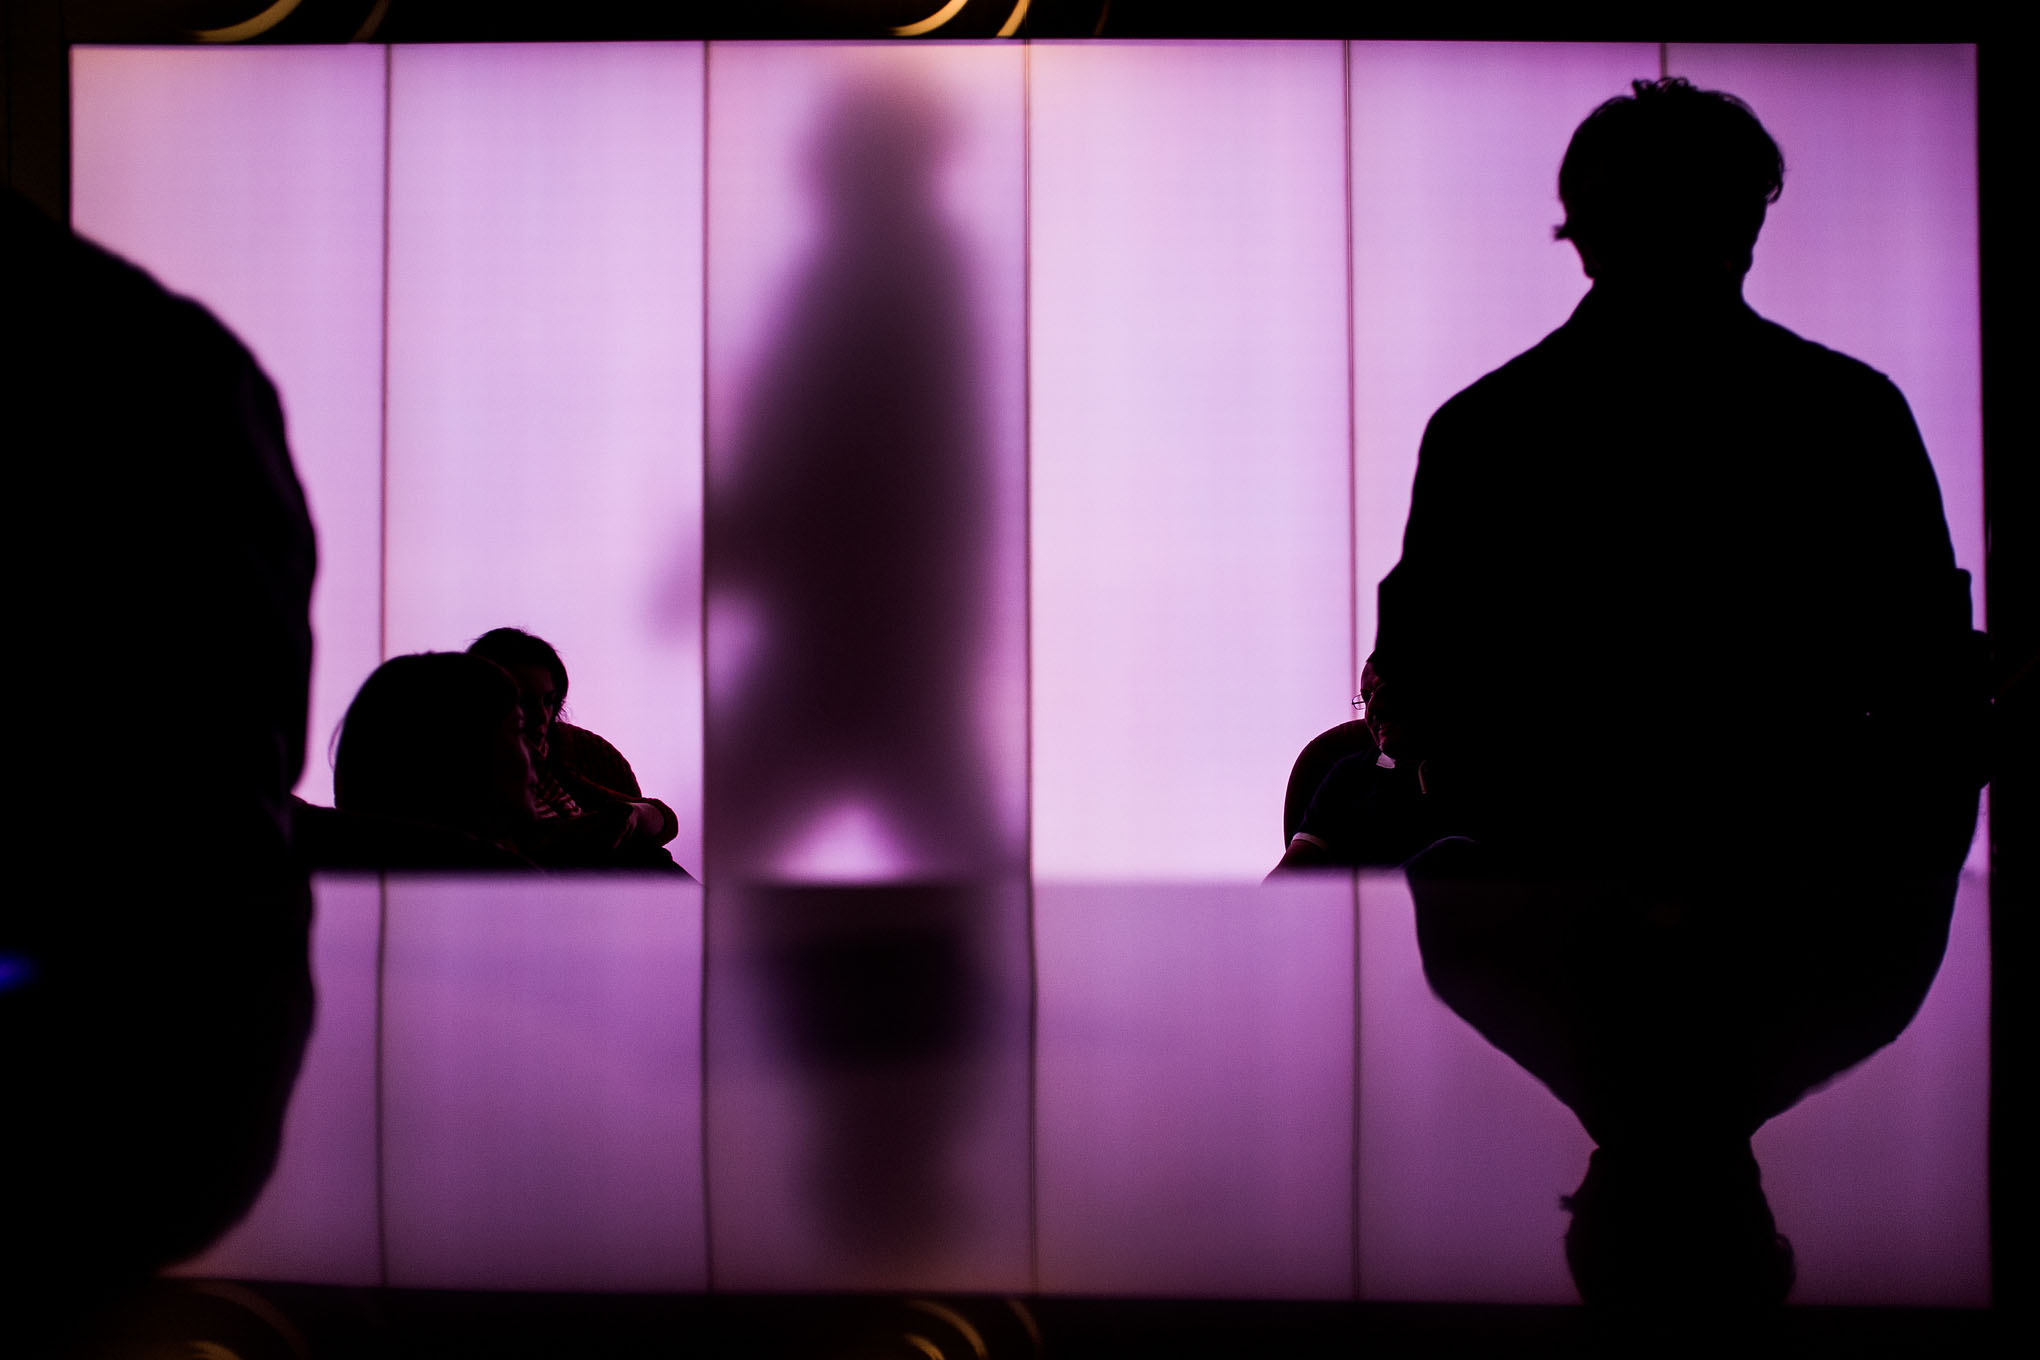 four shadows in a purple room